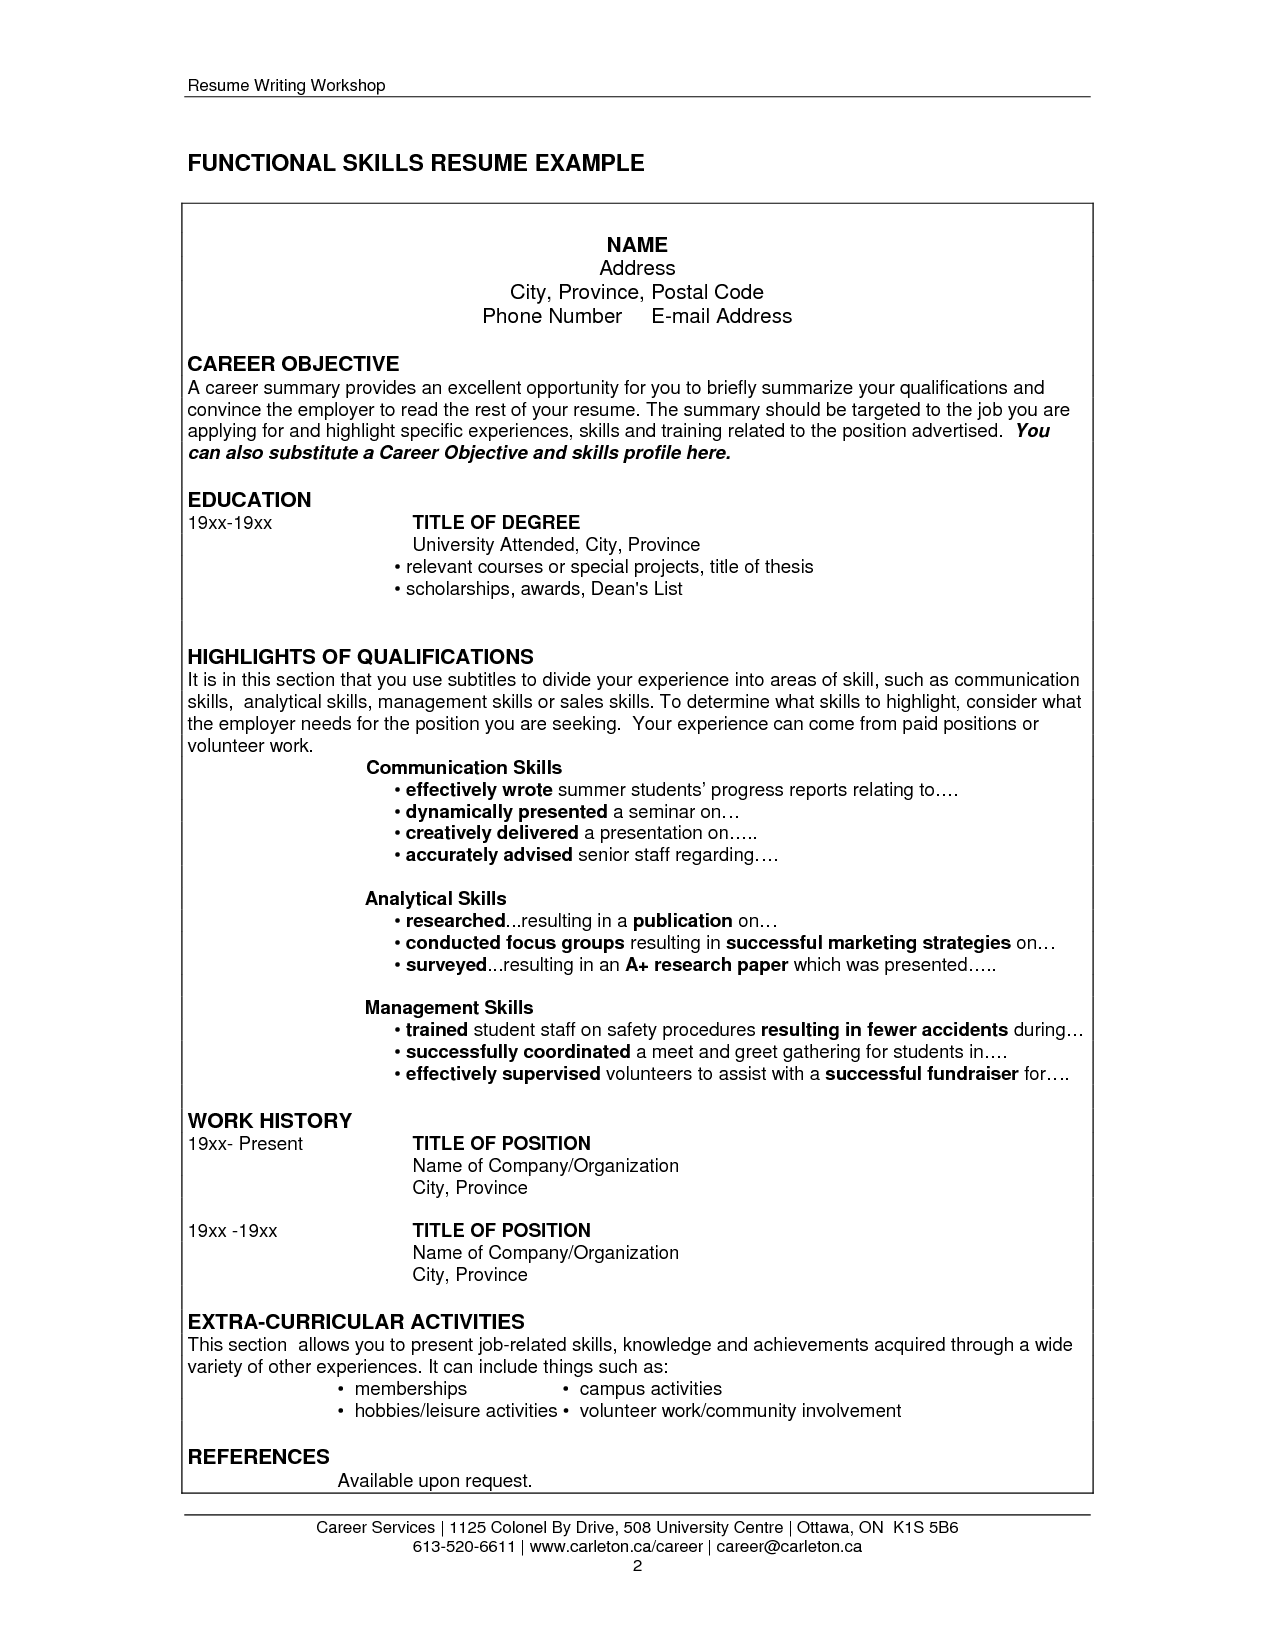 Traditional Resume Template Image Result For Skills Resume Format  Business  Pinterest